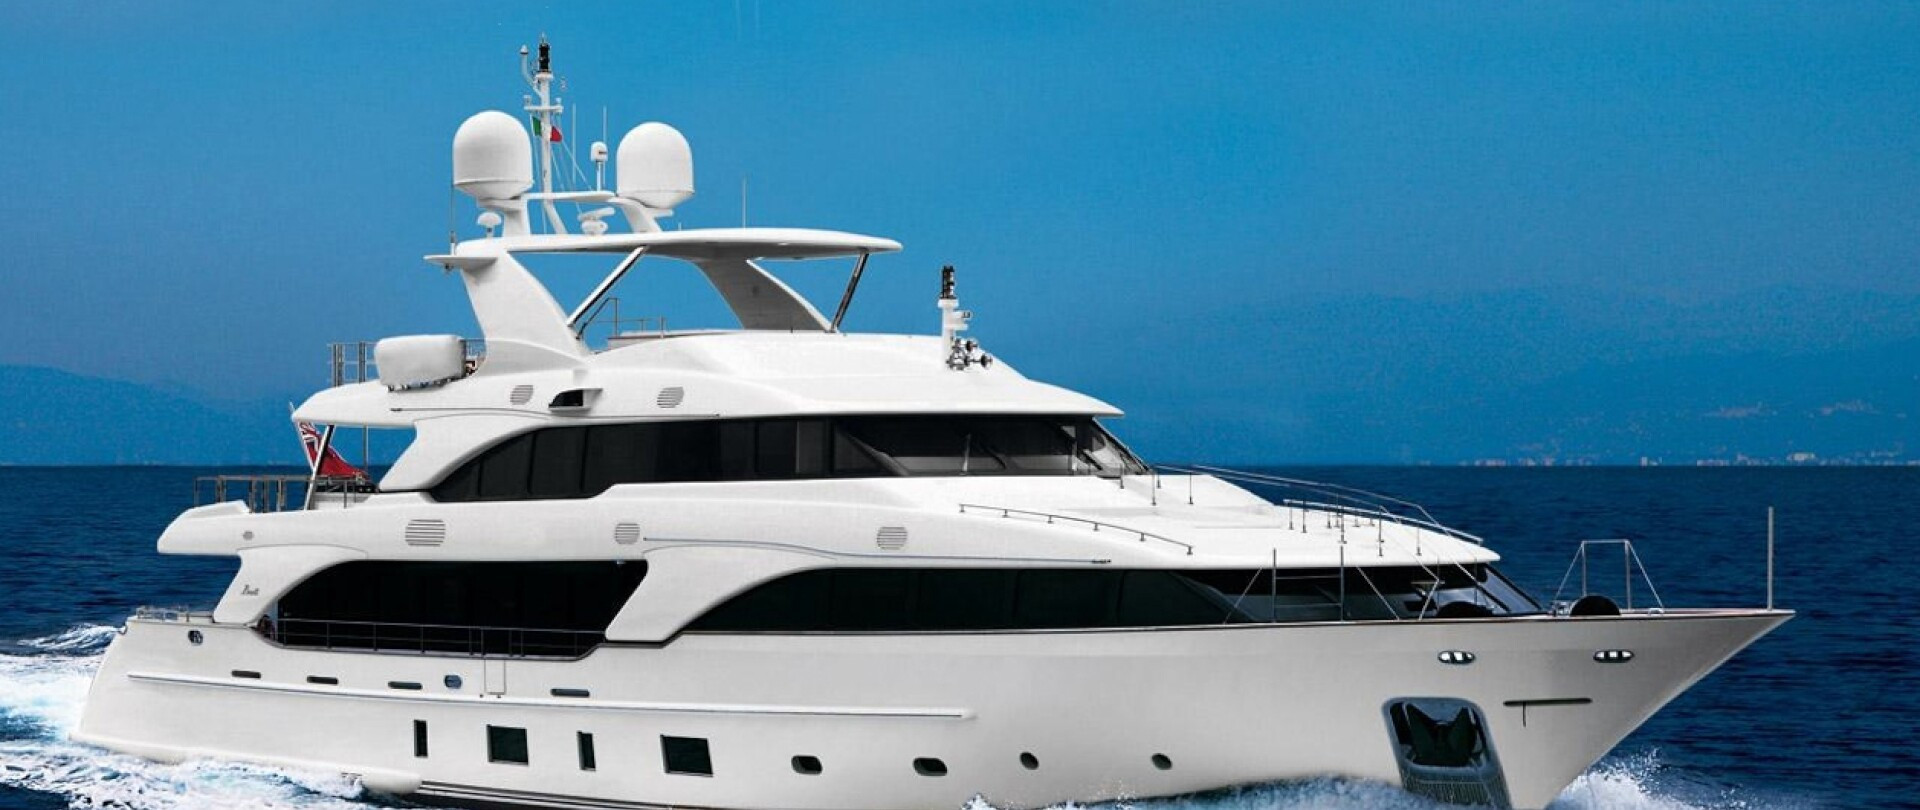 Edmiston to Attend 2014 Fort Lauderdale International Boat Show photo 2